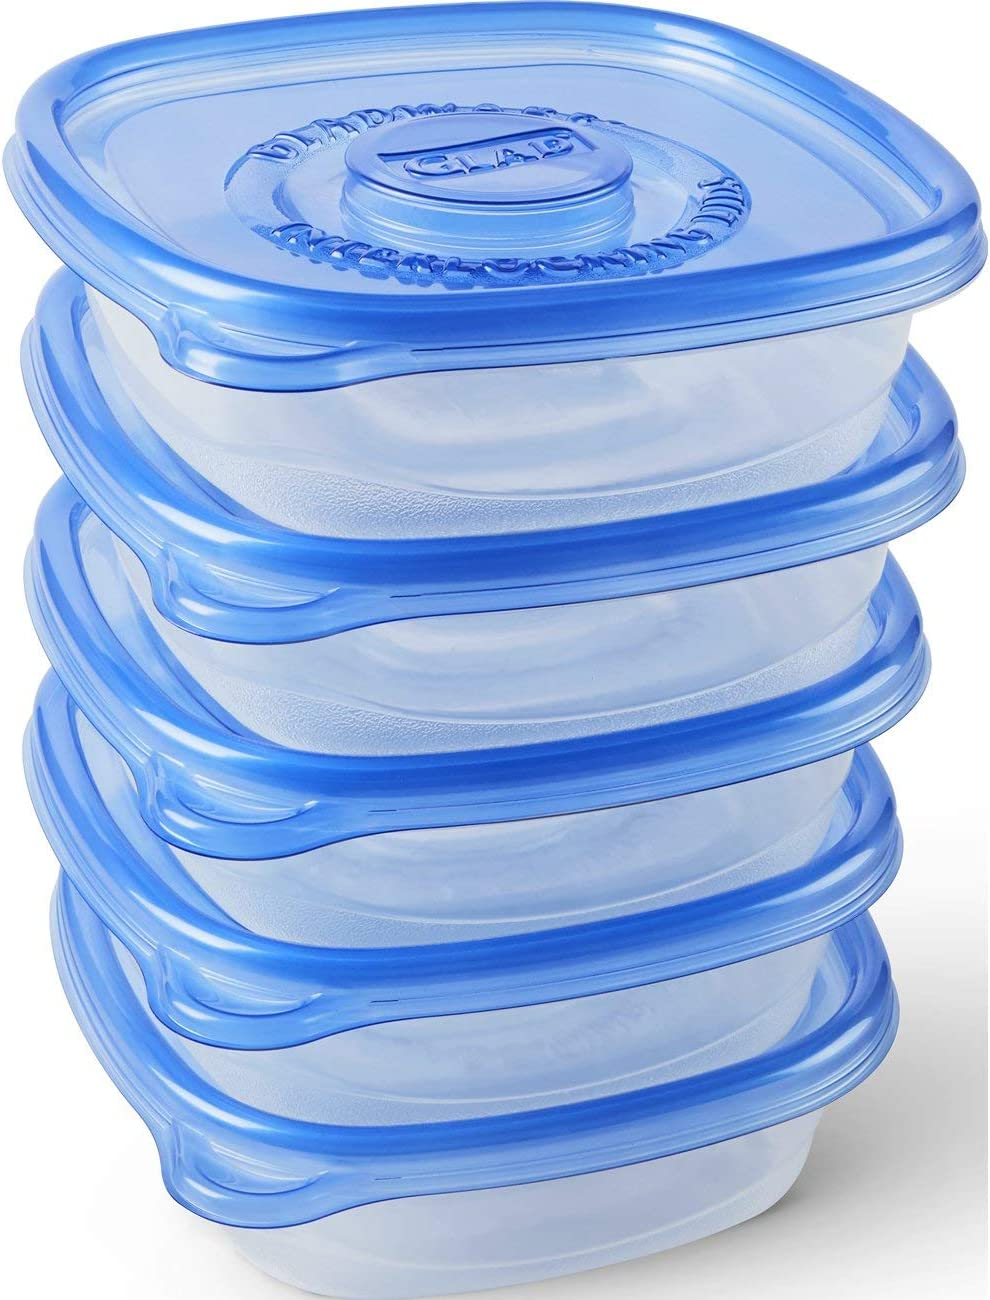 Glad Food Storage Containers - Entree Container - 25 Ounce - 5 Count (Pack of 6)